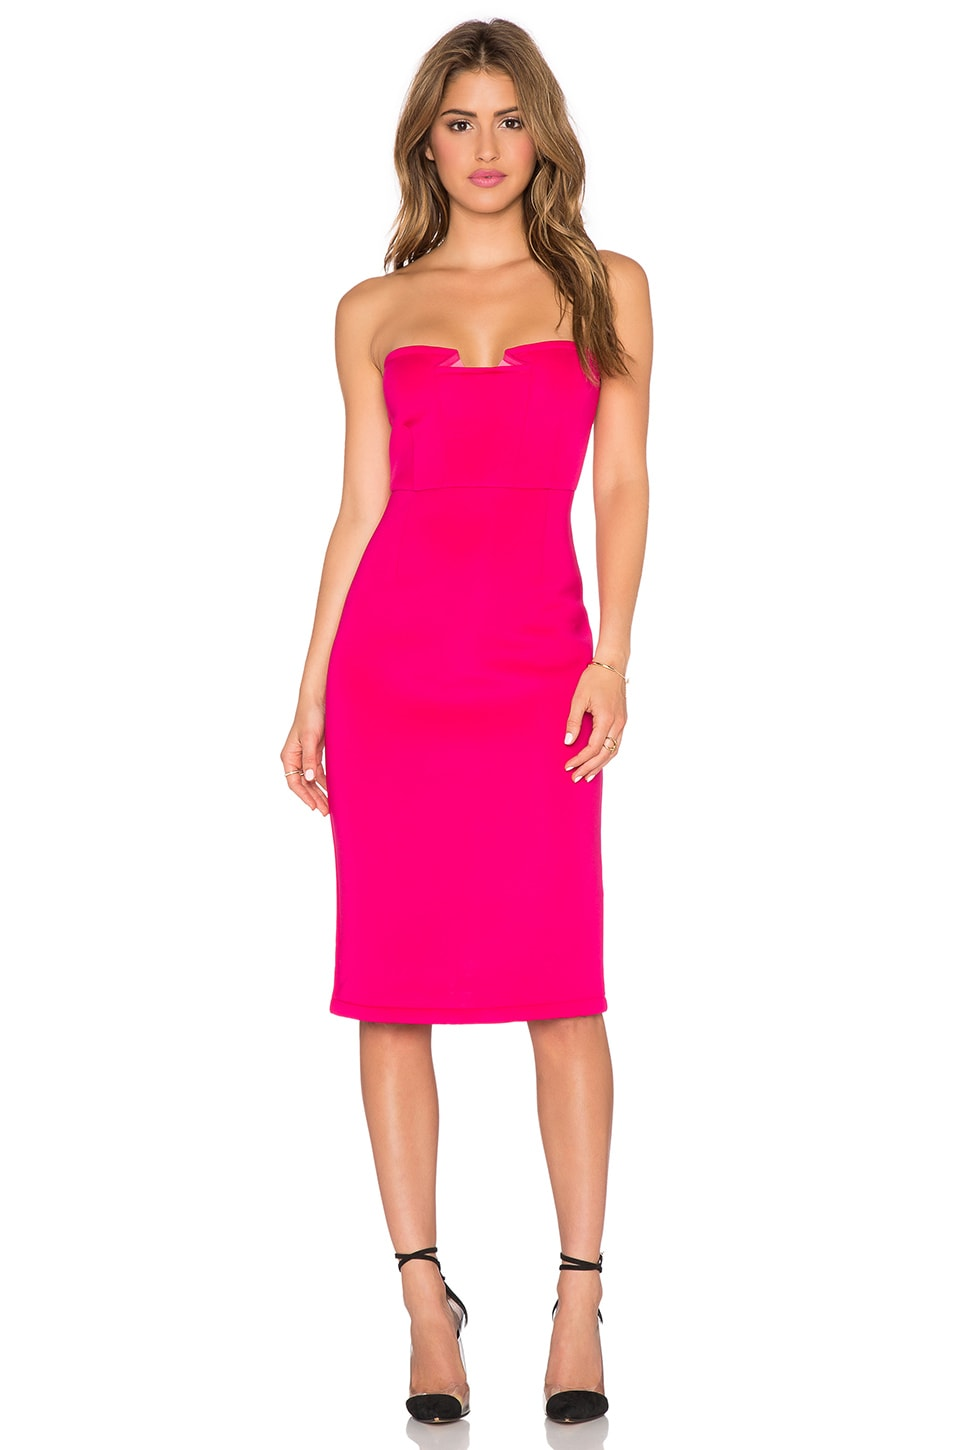 Hot Pink Strapless Dresses  Cocktail Dresses 2016. Masters Of Public Health Online Programs. Credit Card Debit Relief The Egyptian Seattle. Is Penn Foster College Accredited. Unified Communications Benefits. Cost Of Small Business Health Insurance. Schools For Landscape Architecture. How To Start A Newsletter Pool Decking Repair. Logic Games Lsat Practice Riu Bahamas Nassau